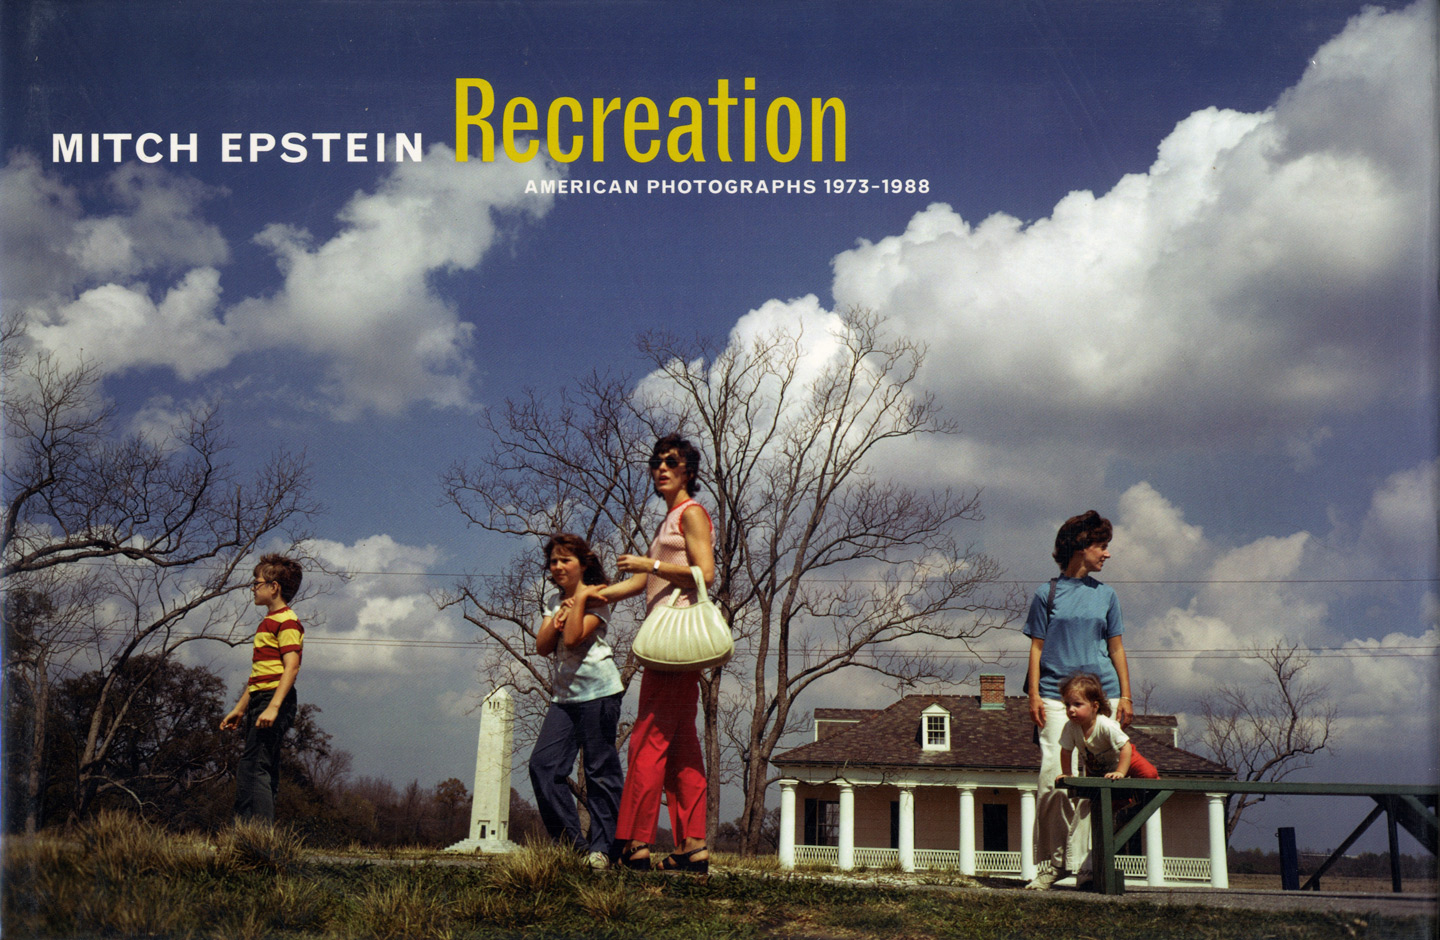 Mitch Epstein: Recreation, American Photographs 1973-1988 [SIGNED]